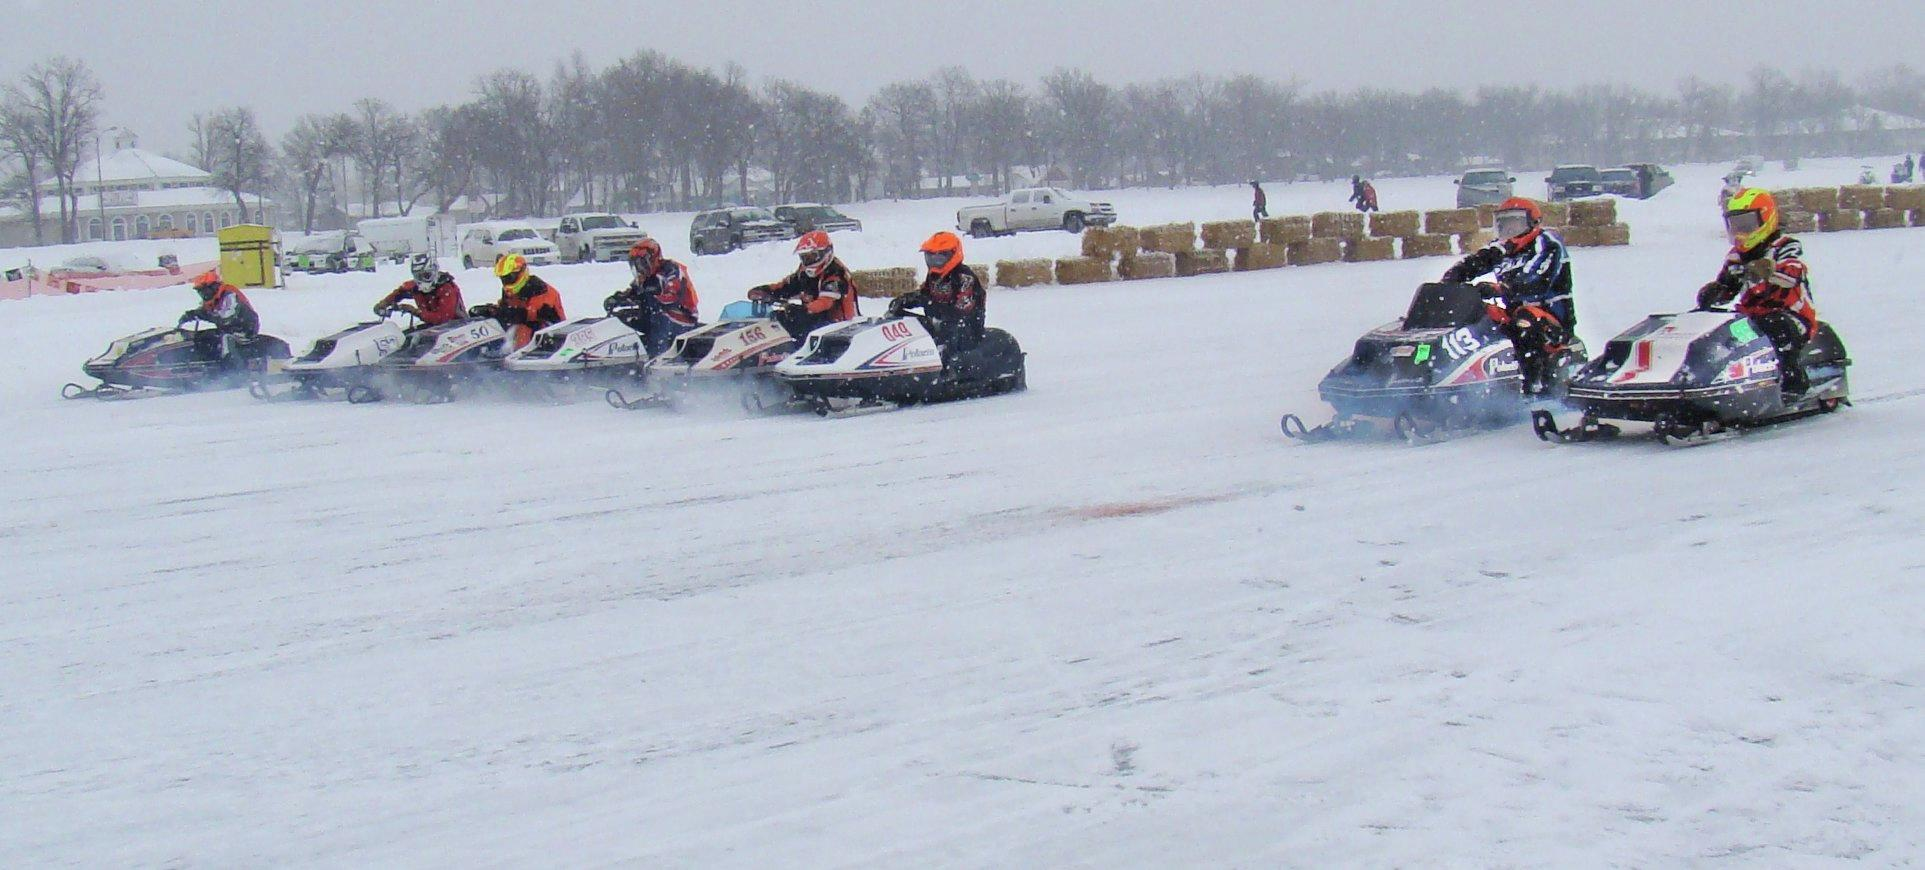 Ready, set... racers lined up in their vintage sleds for the start of a heat during last year's Ice Harvest 440 in Detroit Lakes. Organizers estimated there were between 600-650 people in attendance at the event. (Submitted Photo)